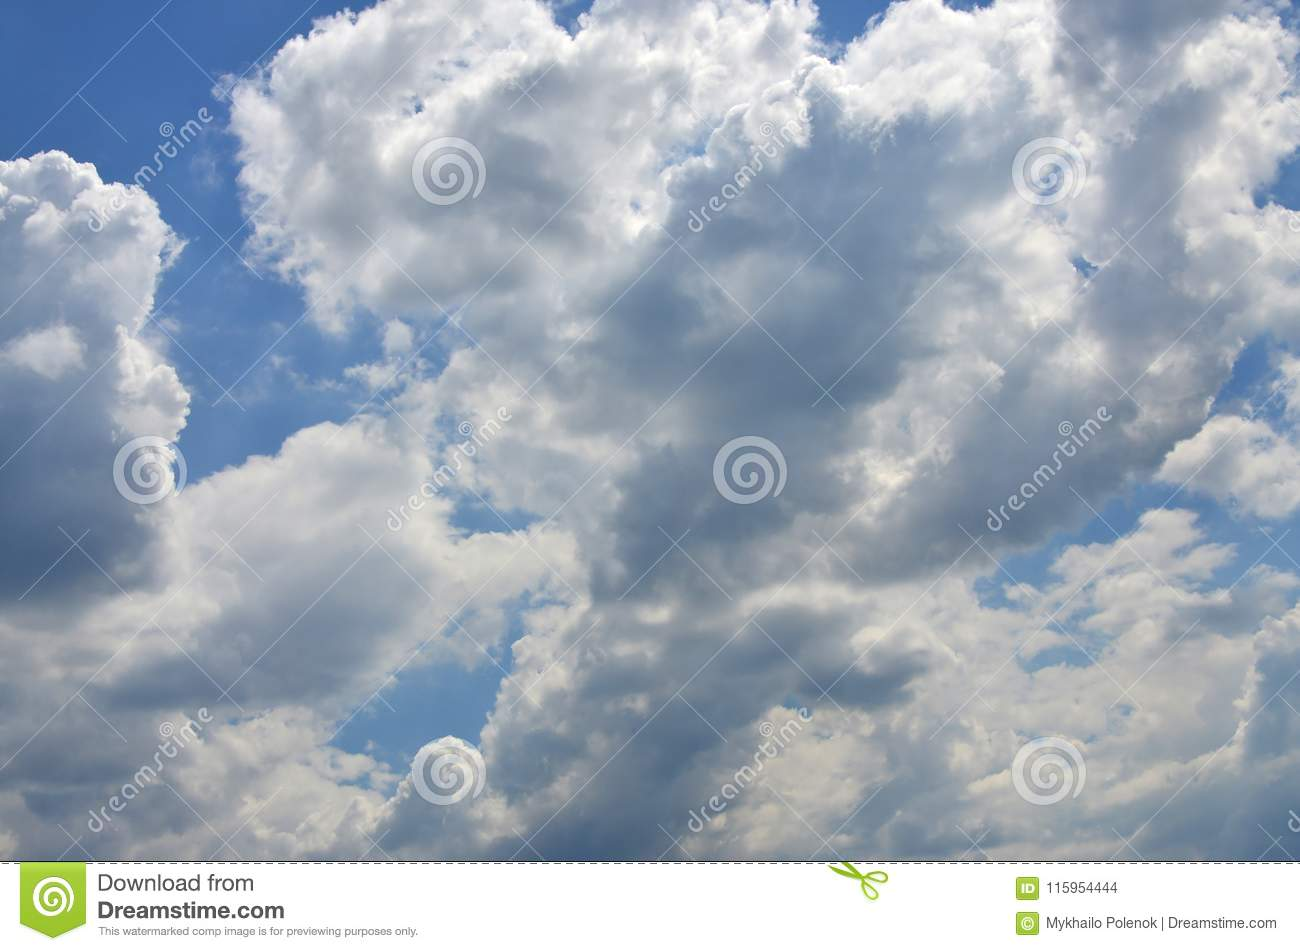 Beautiful blue sky background template with some space for input text message below isolated on blu